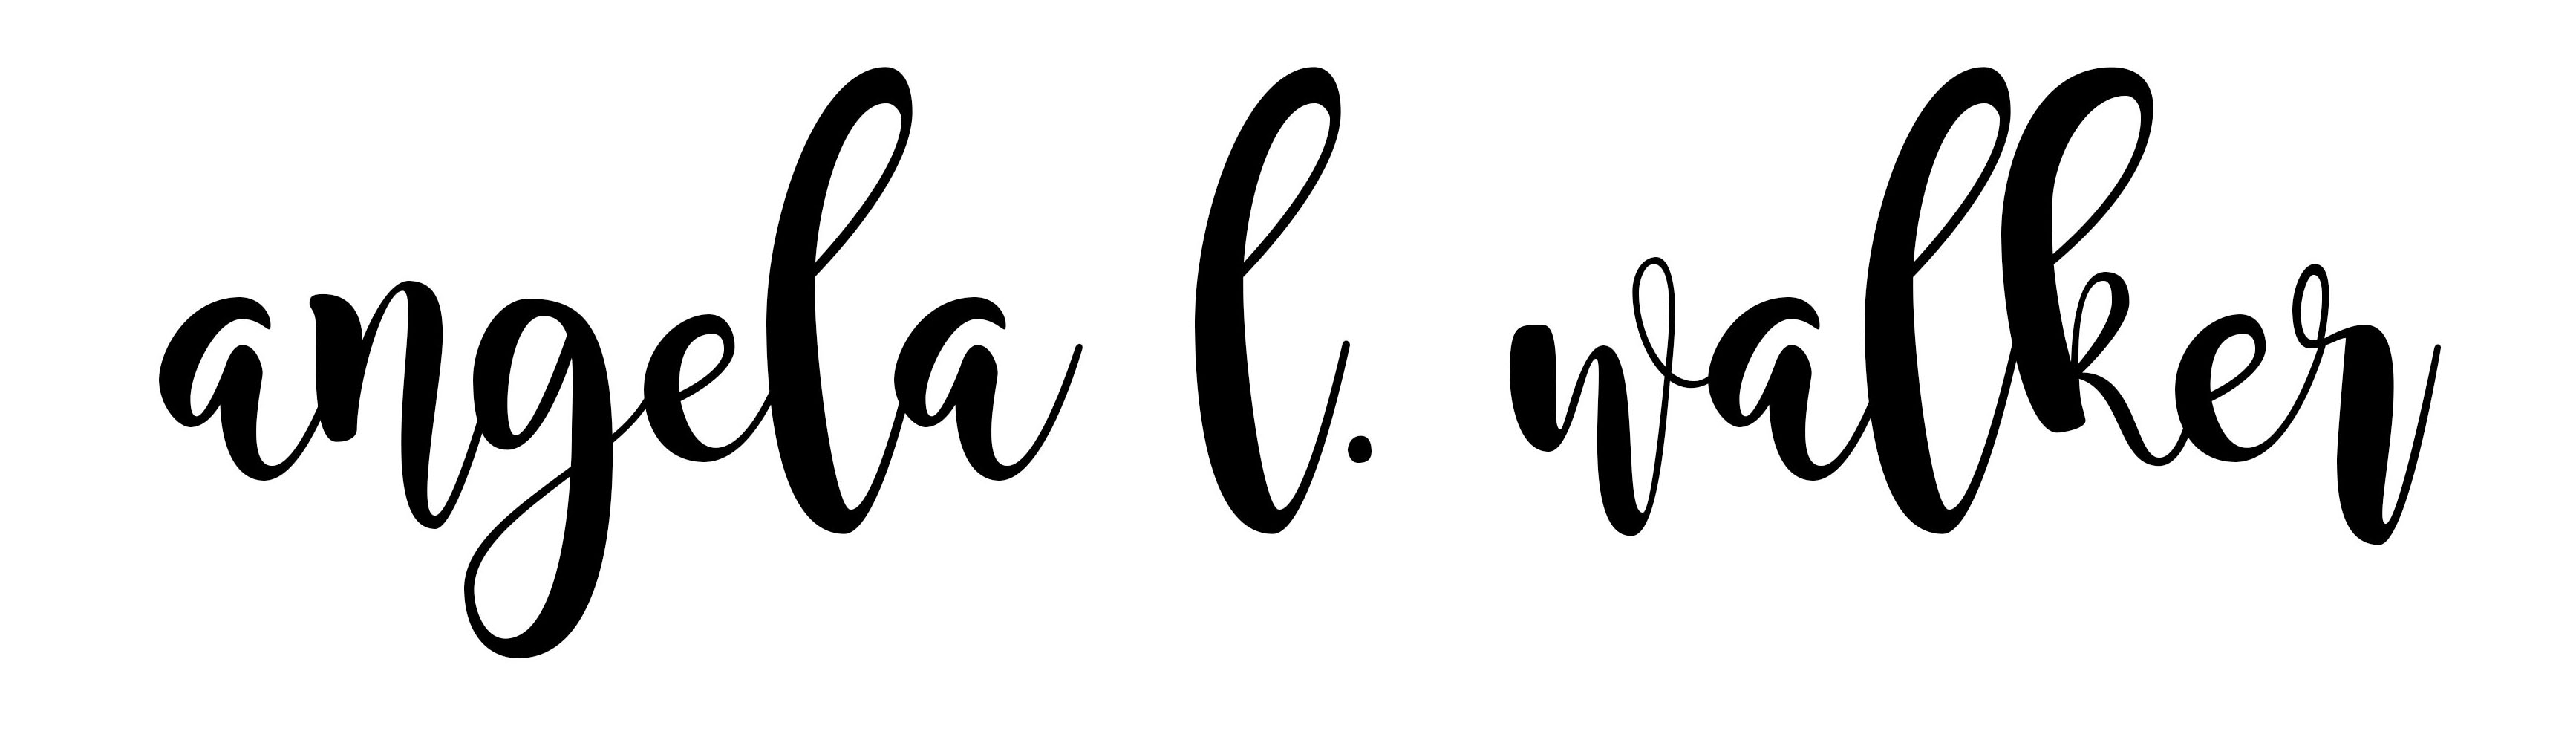 angela l. walker's Signature